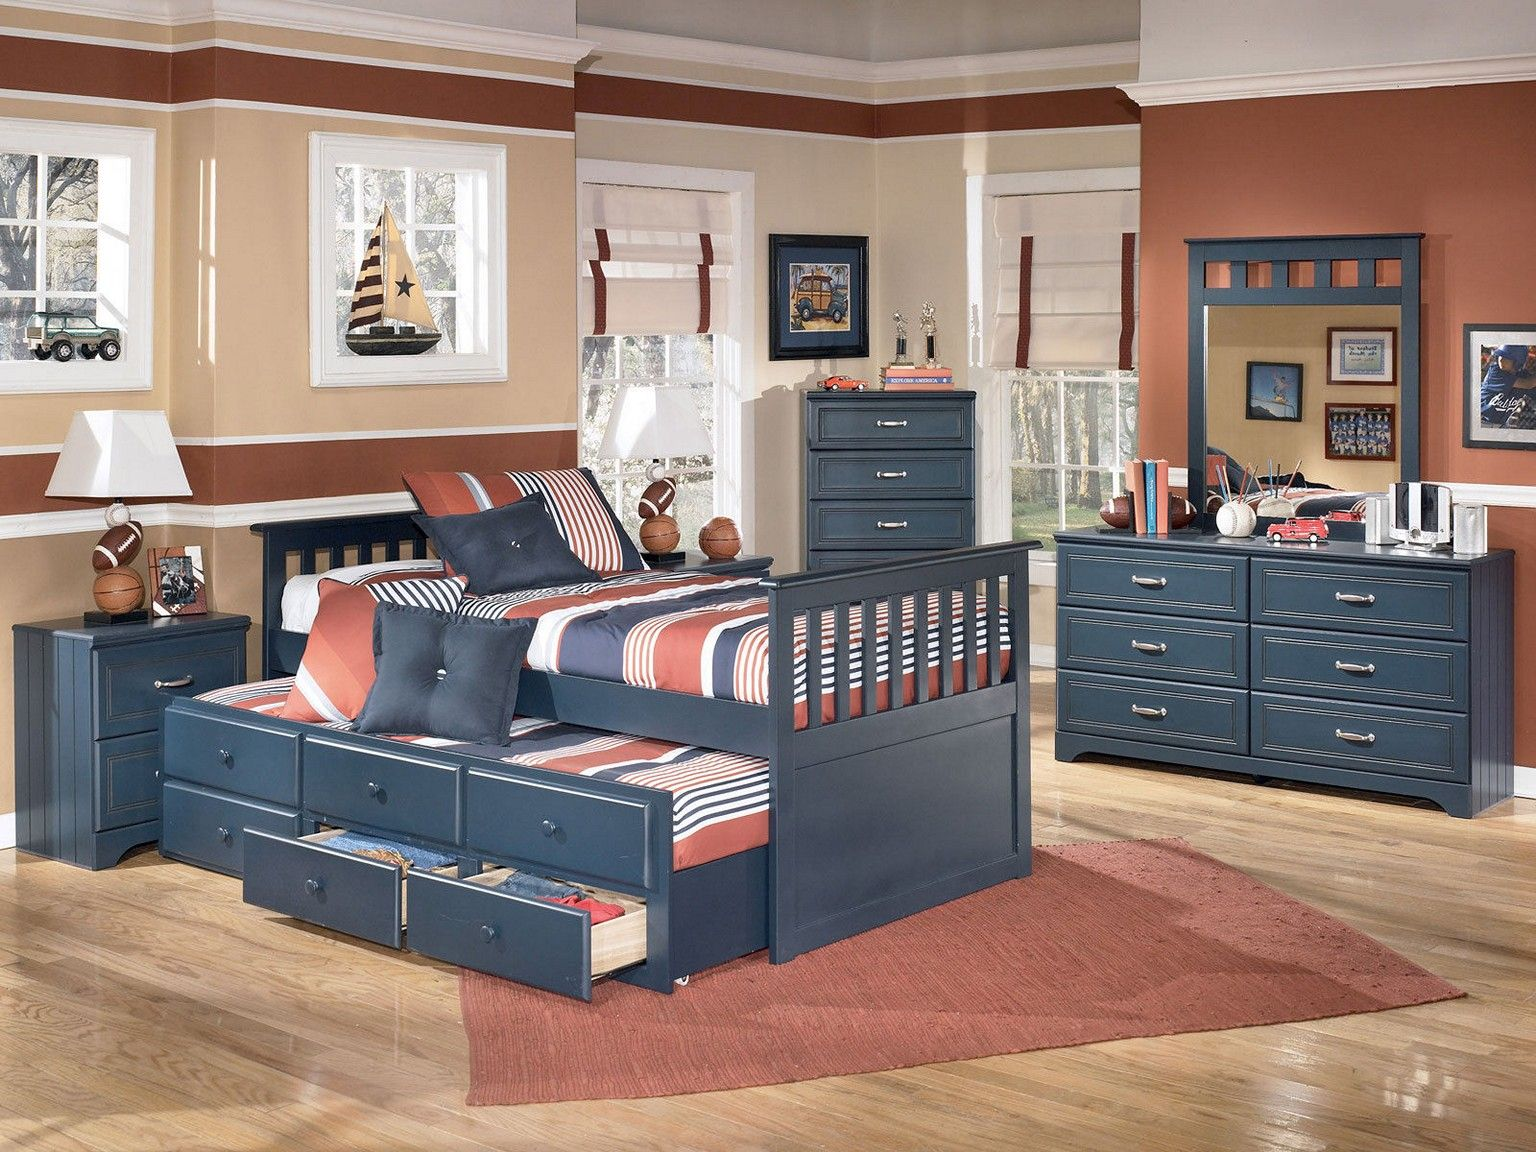 Bed Frame With Drawers Teen Boy Bedroom Ideas Lampshade On